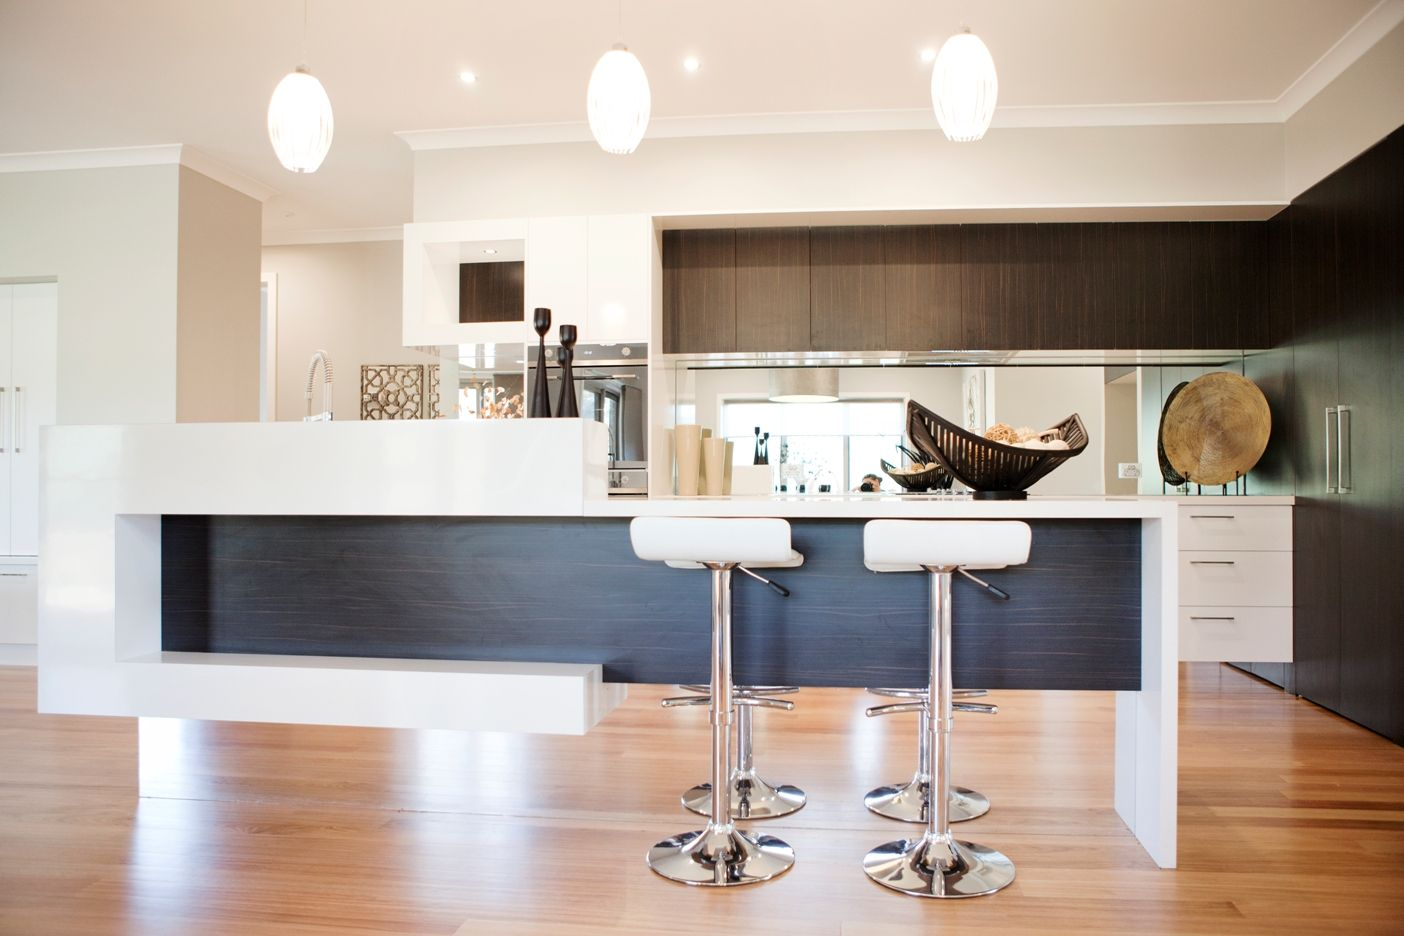 Entrant 2012 Kitchen Of The Year Hia Regional Housing Awards North West Vic